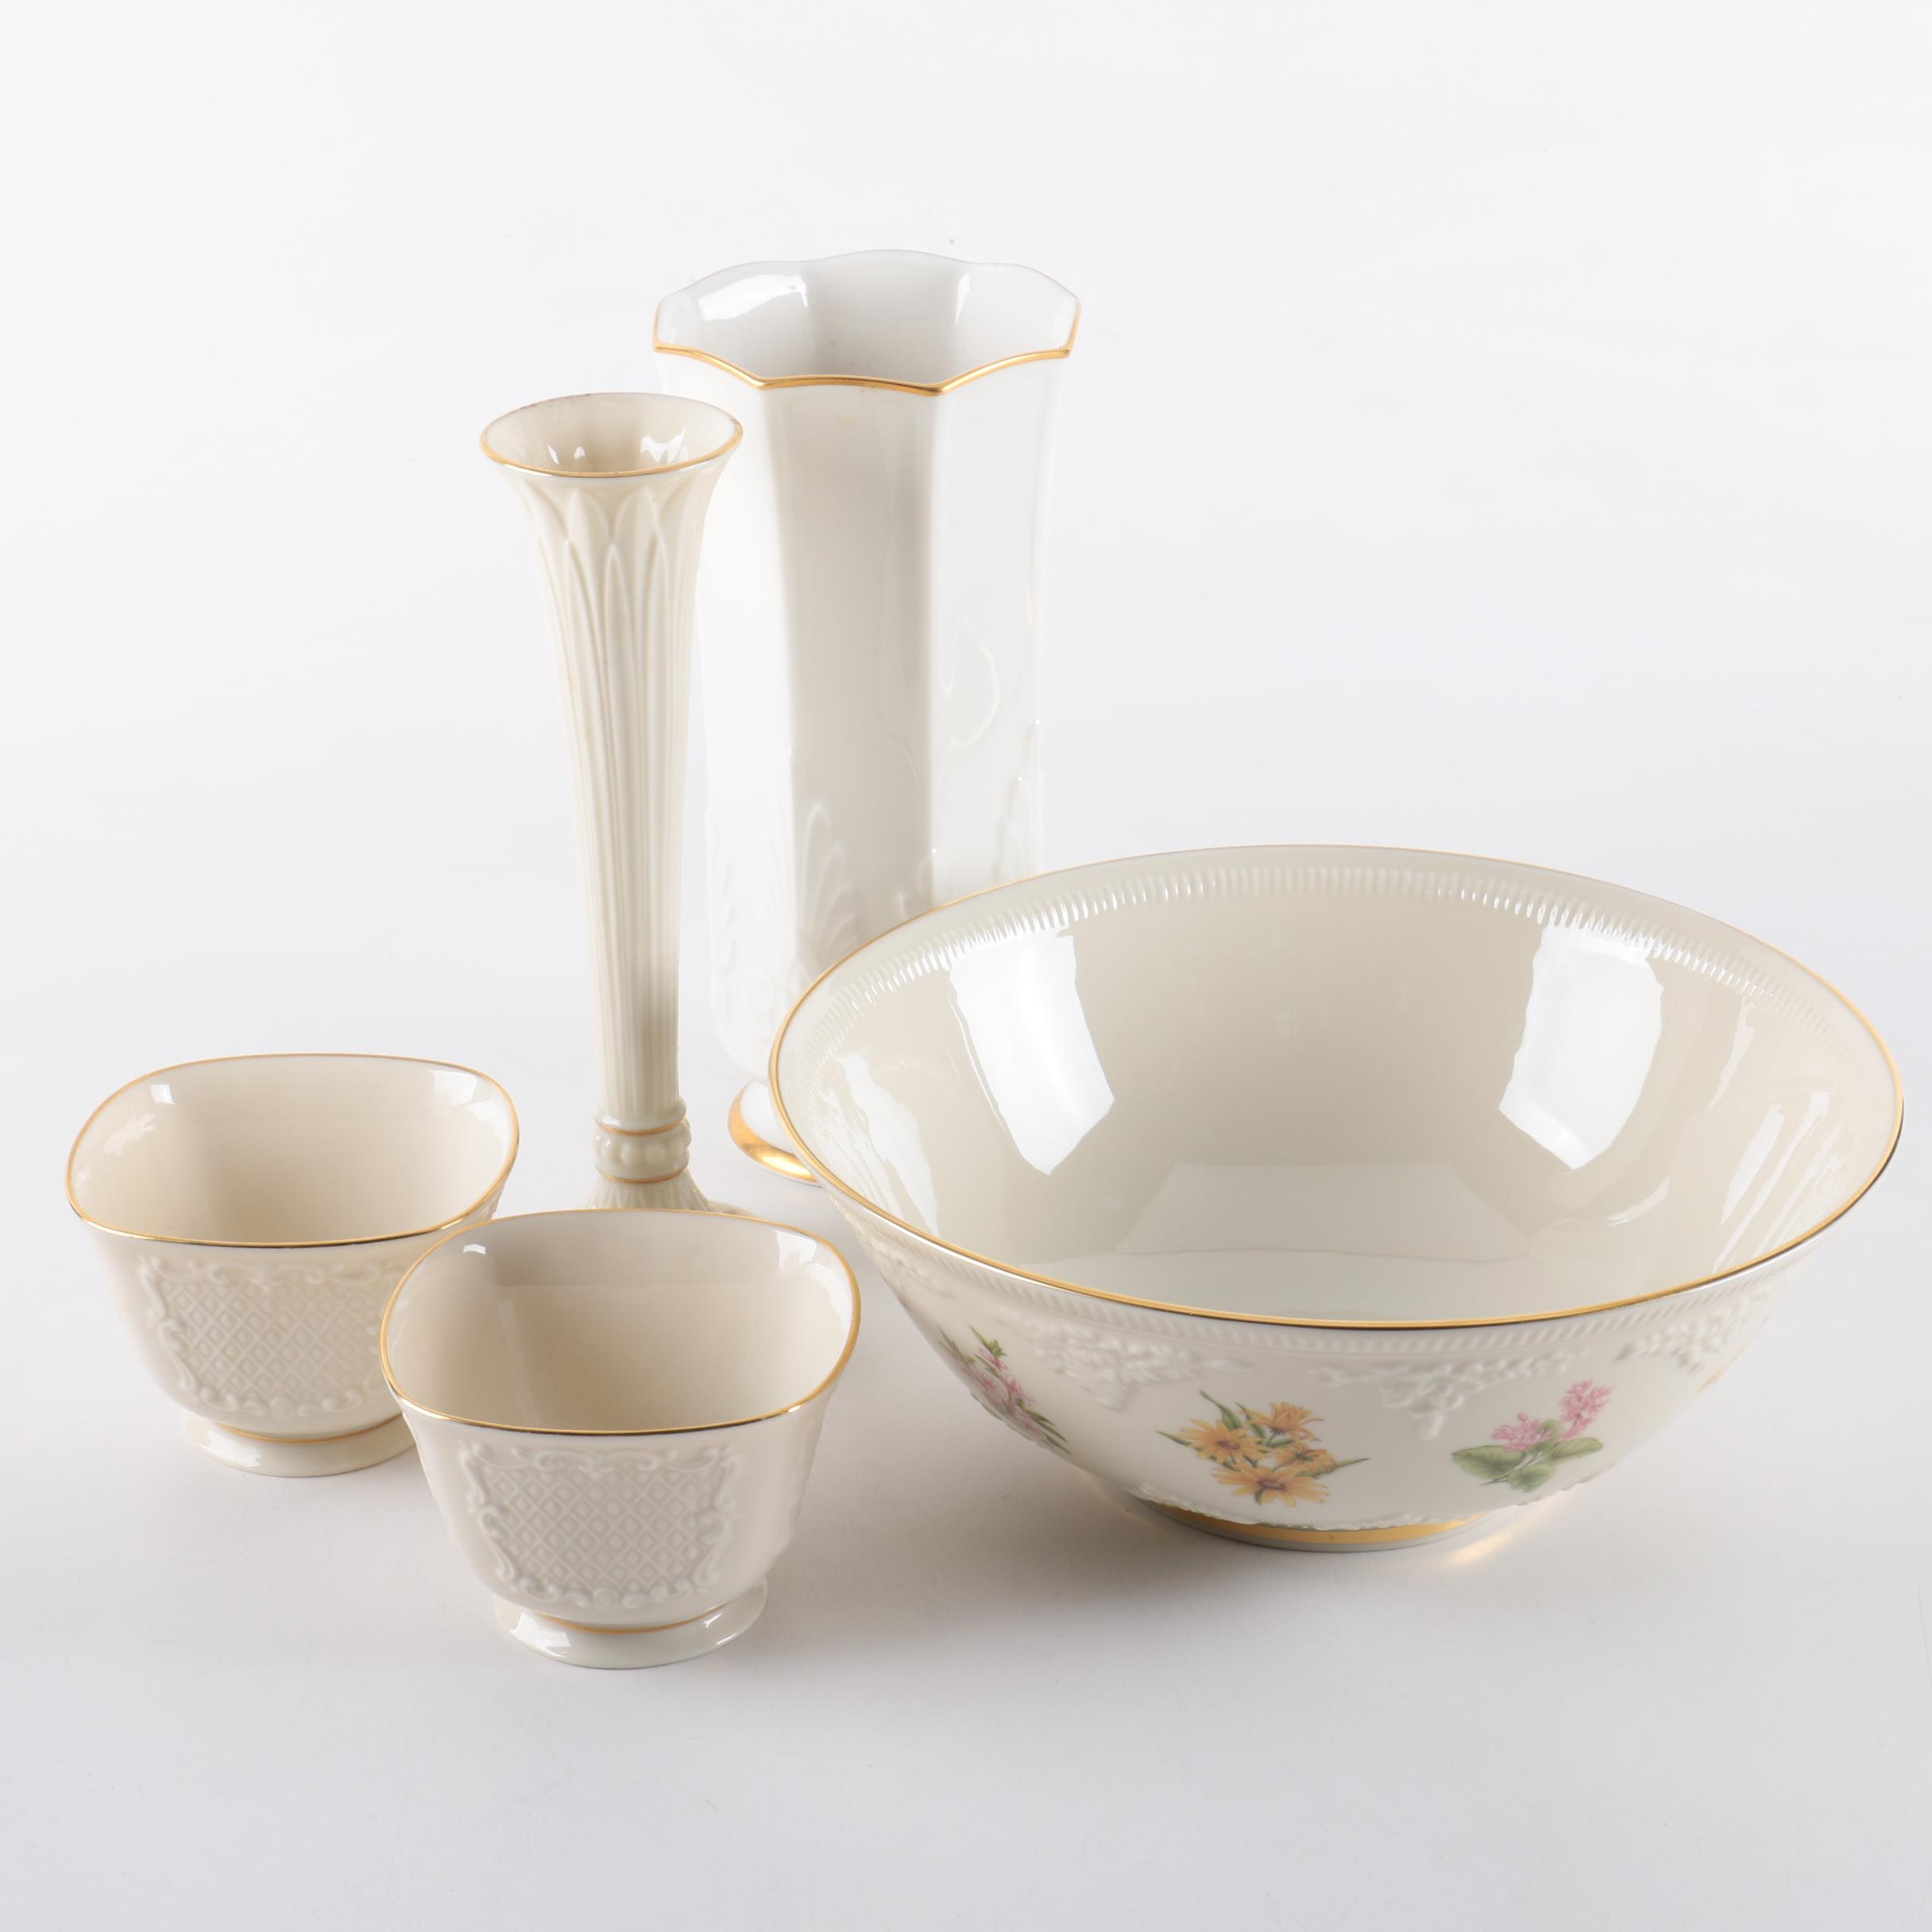 Lenox and Noritake Porcelain Vases and Bowls